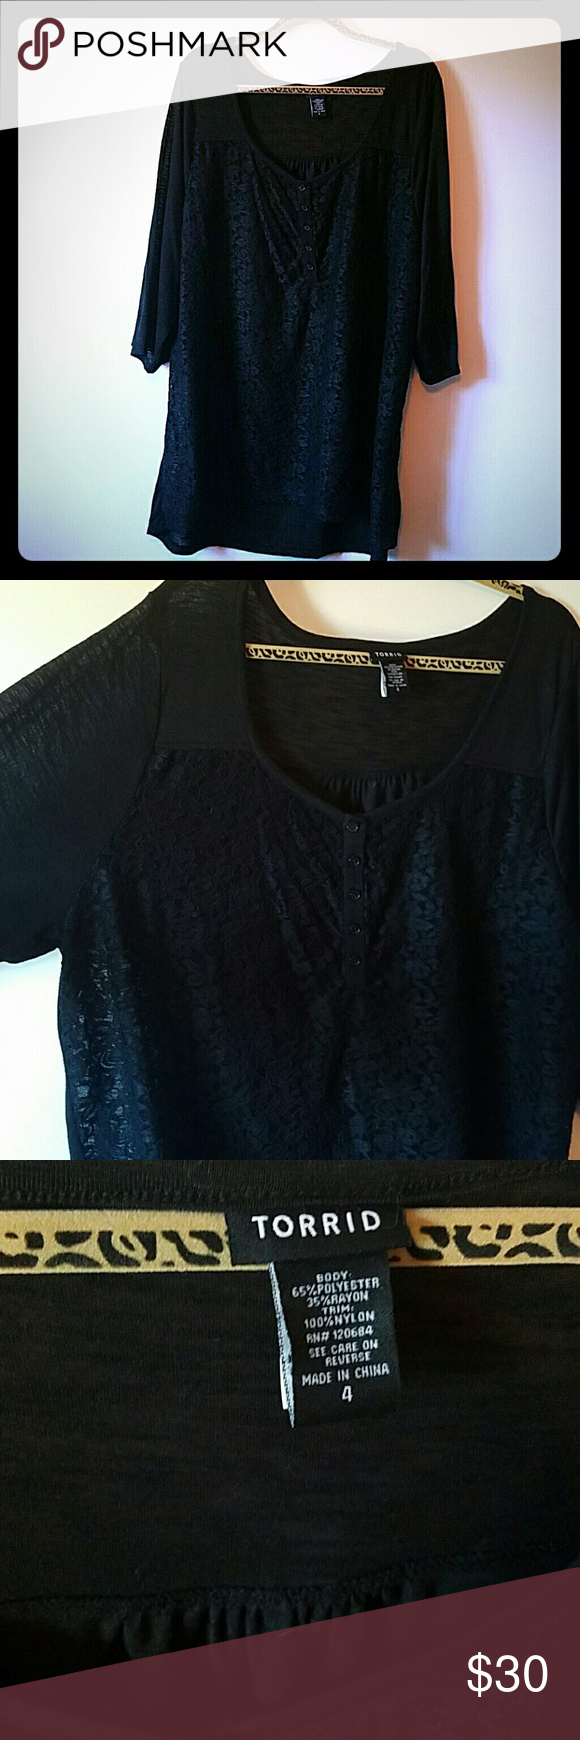 a946a9581b142 Torrid black lace shirt 3 4 sleeve